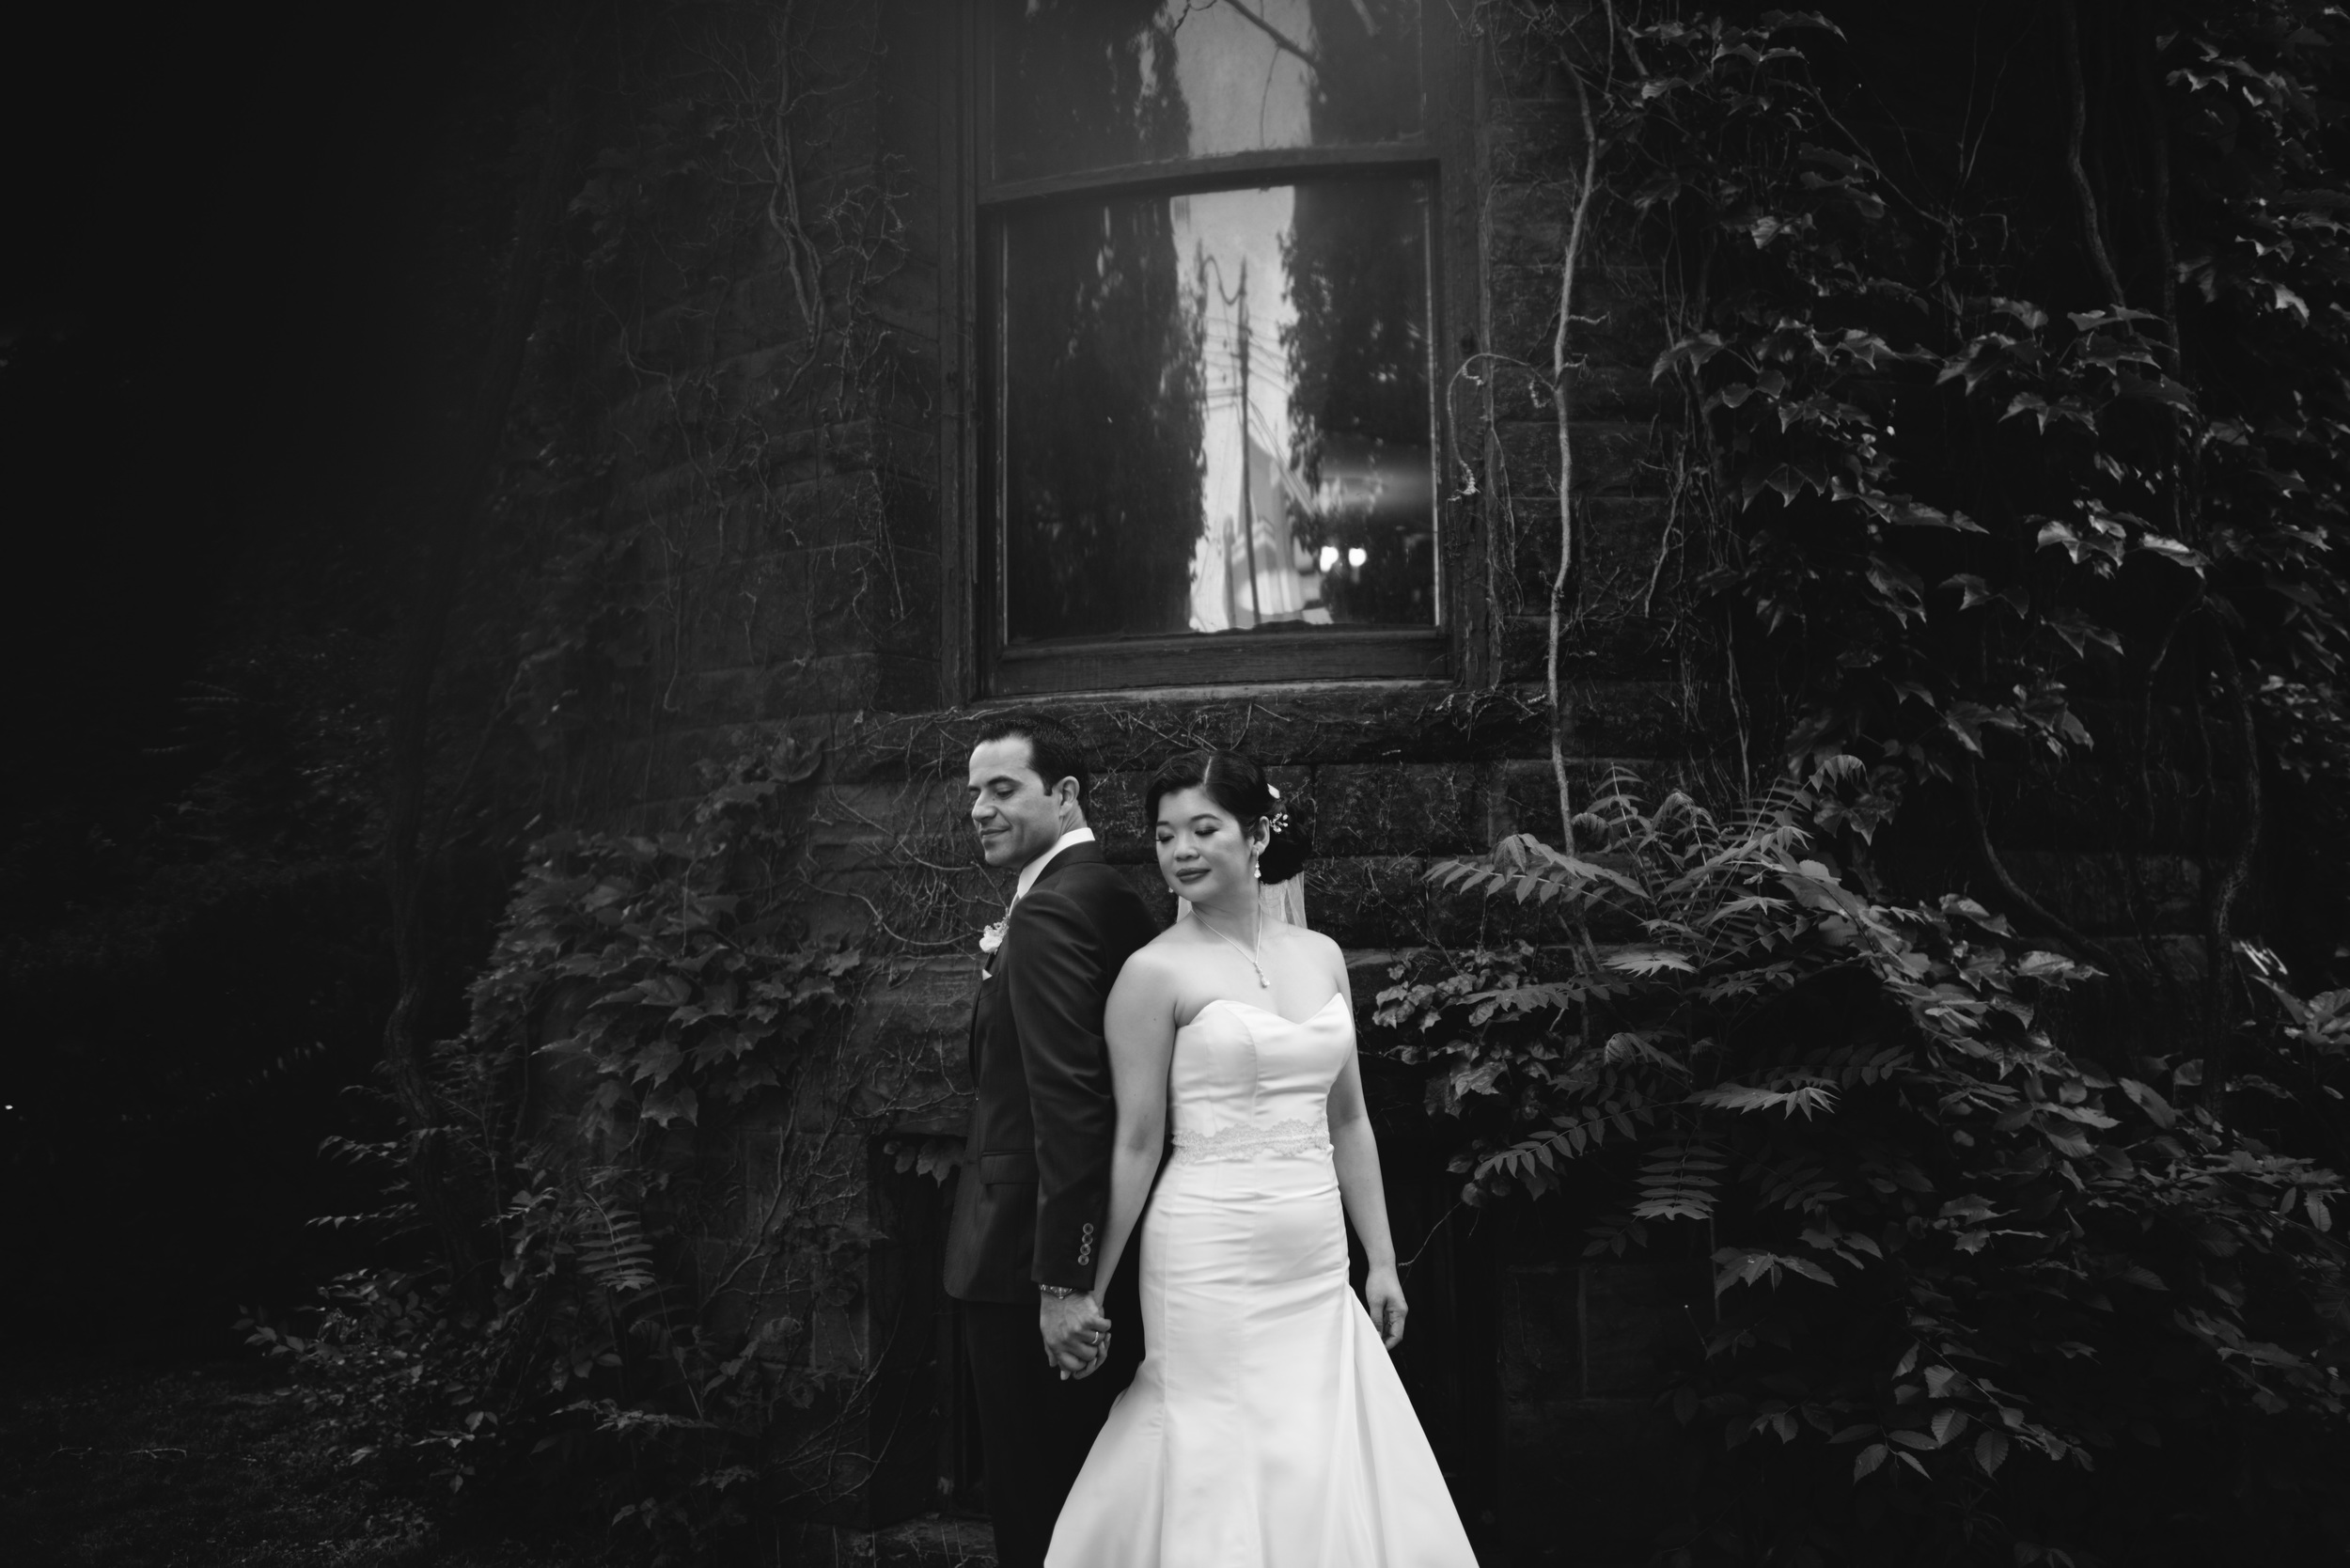 Portrait Photography - modern meets vintage at this Downtown Toronto Wedding